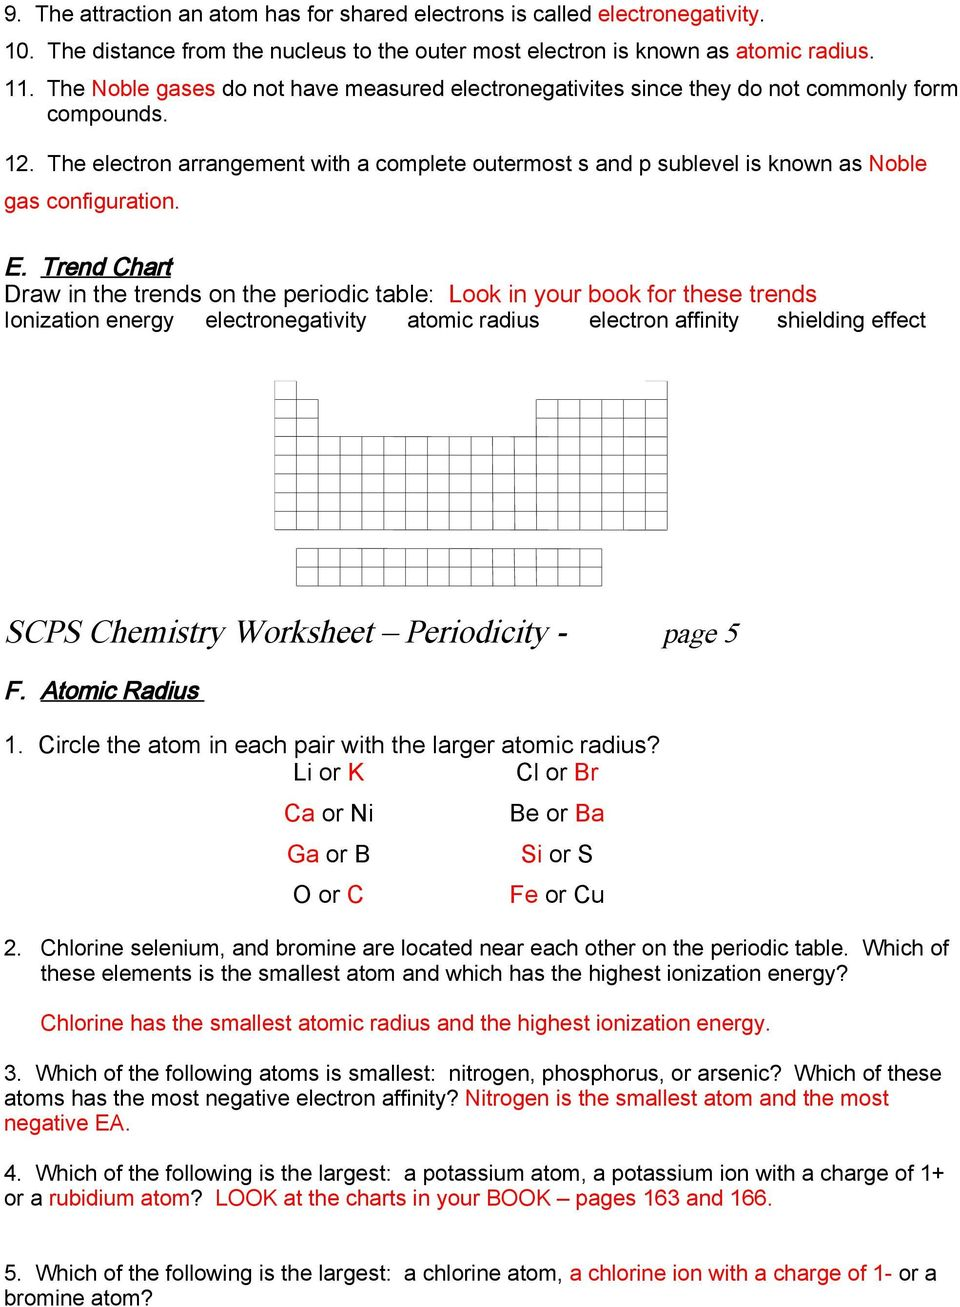 Trends in the periodic table worksheet answer key periodic tables worksheets the electron arrangement with a plete outermost s and p sublevel is known as le gas periodic properties lab determine periodic trends robcynllc Gallery